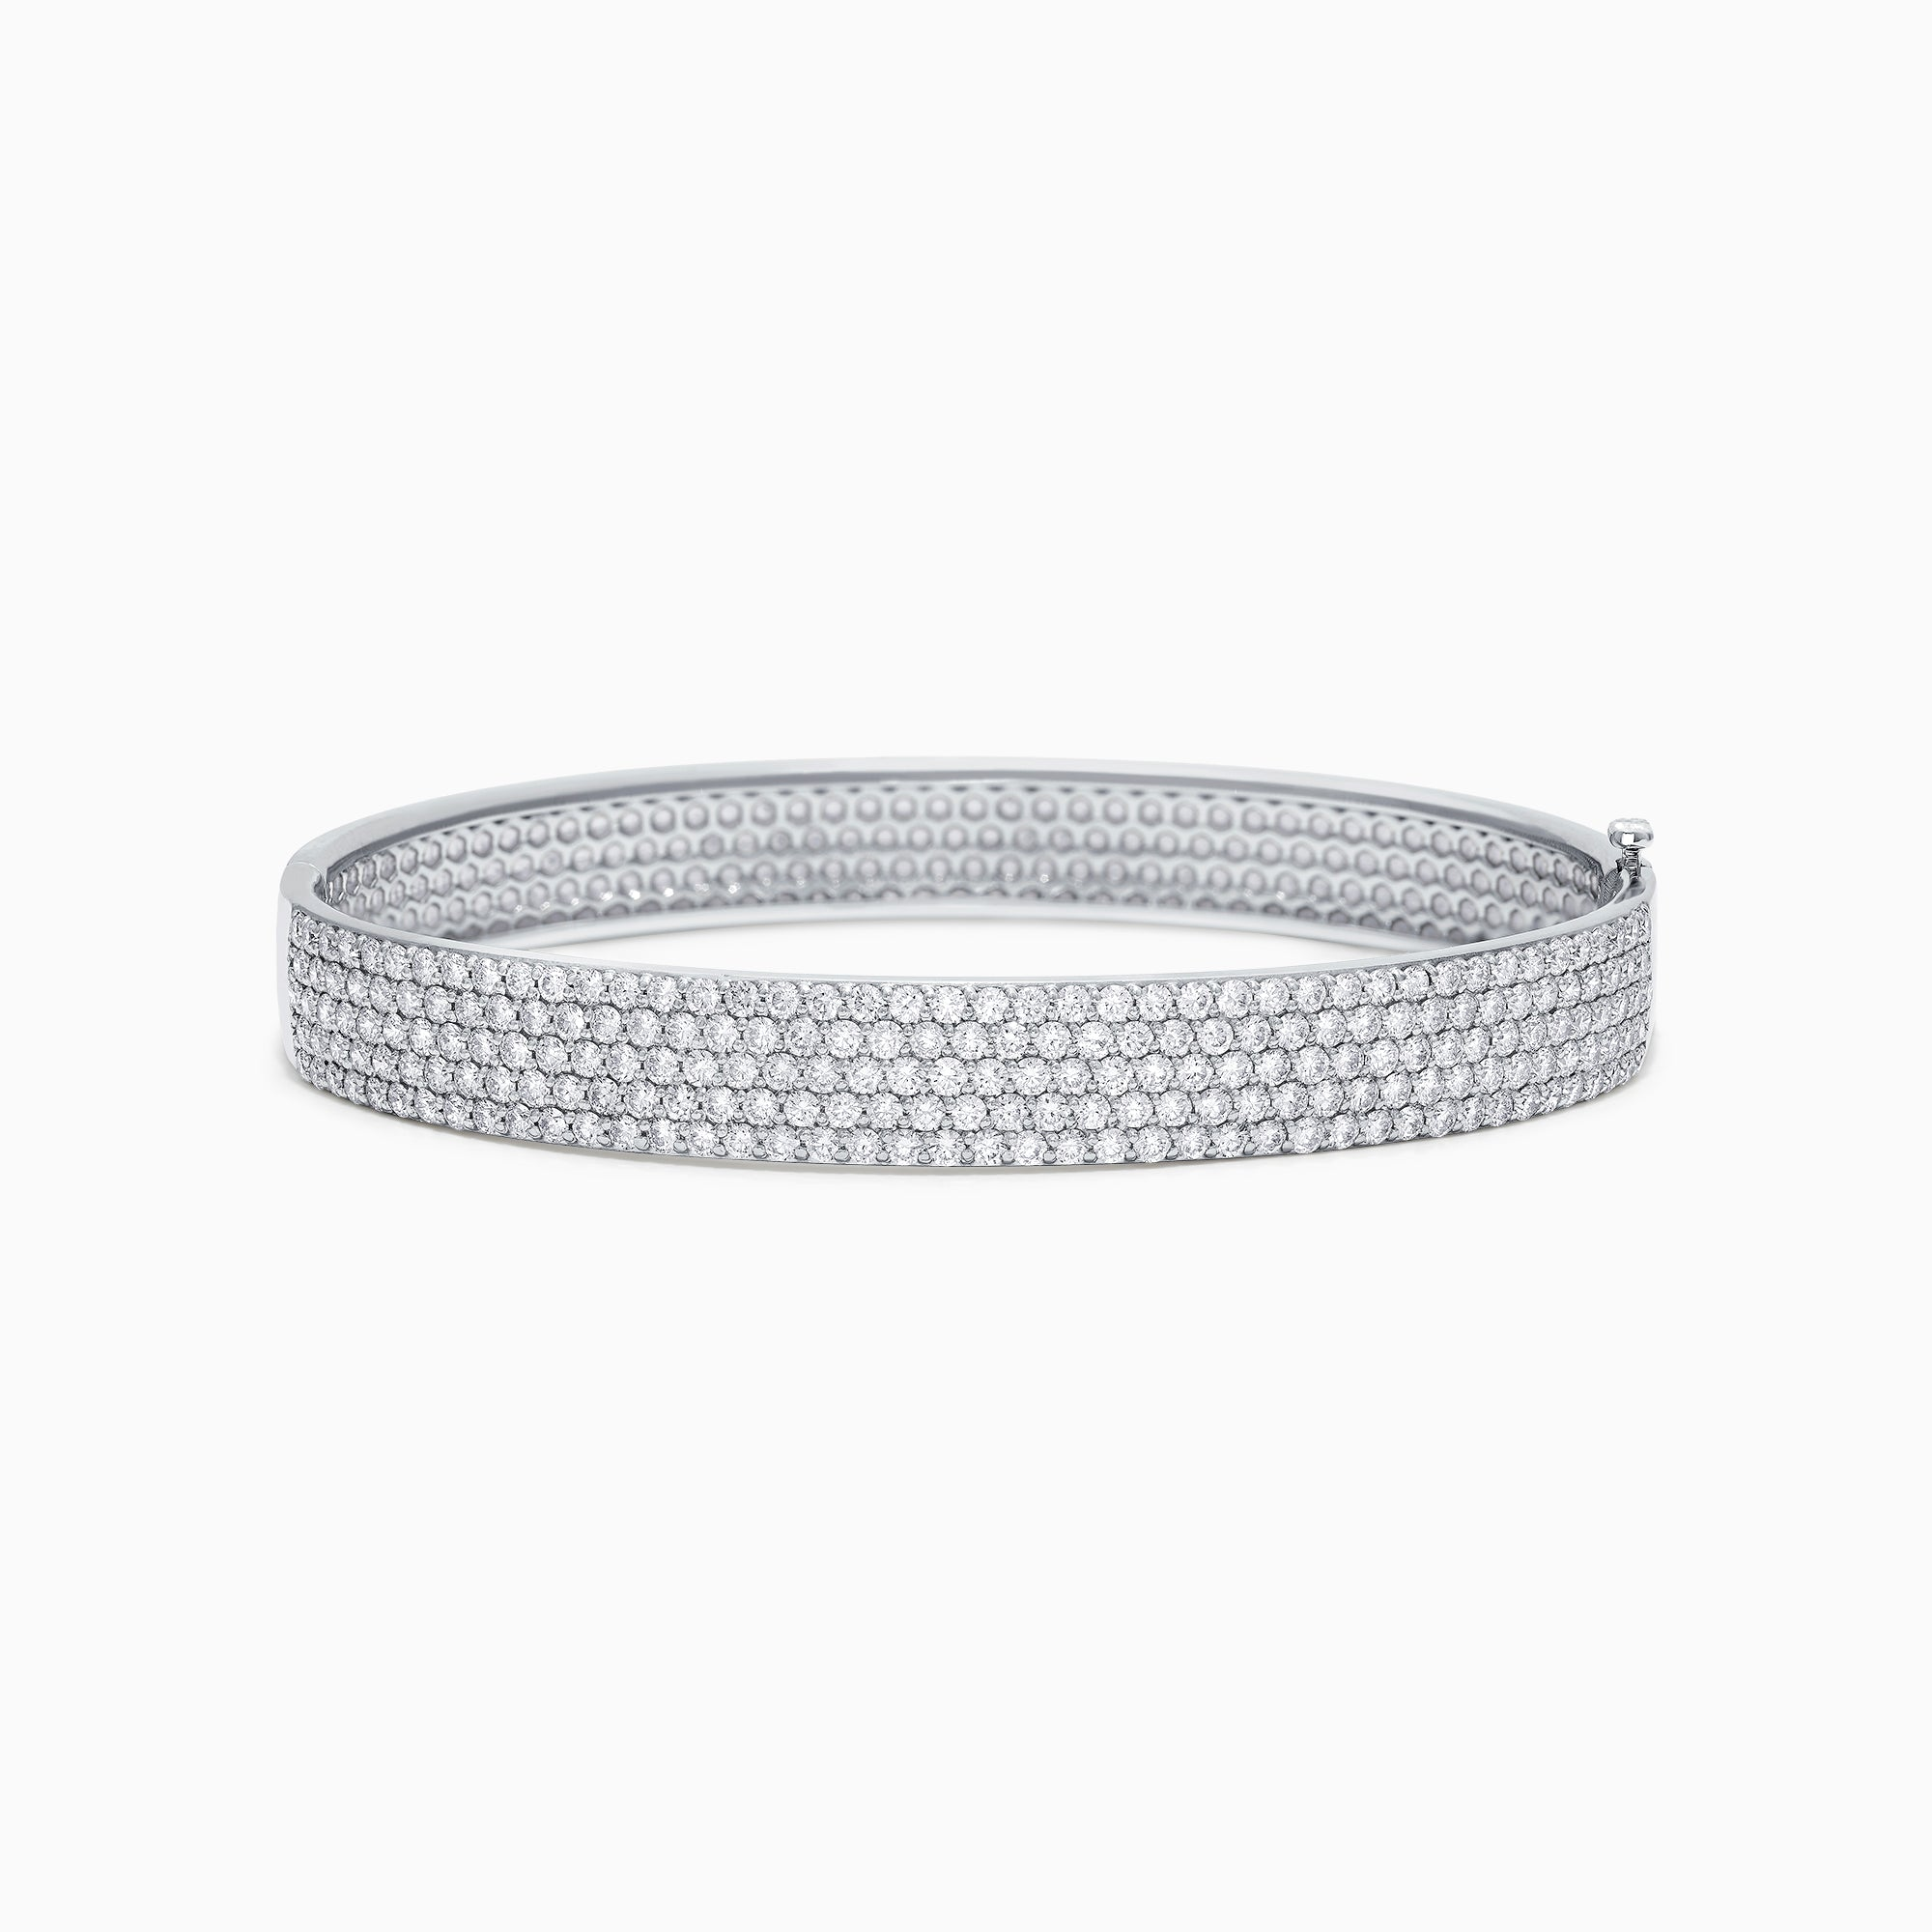 Effy Pave Classica 14K White Gold Diamond Pave Bangle, 4.17 TCW